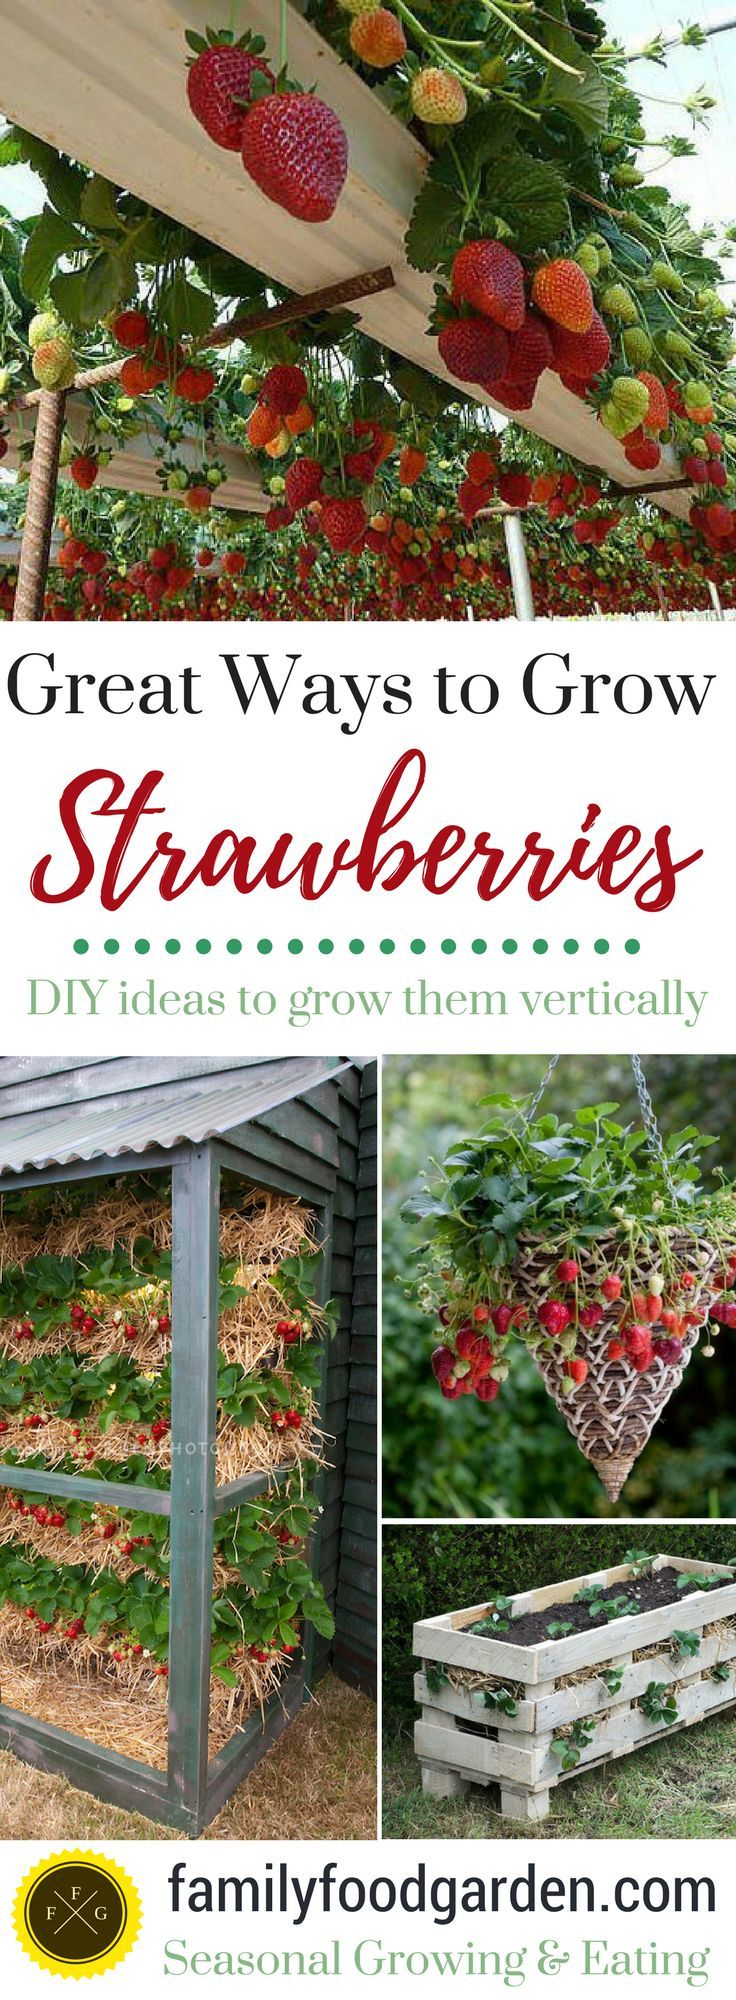 Best Way to Grow Strawberries in Containers 2020